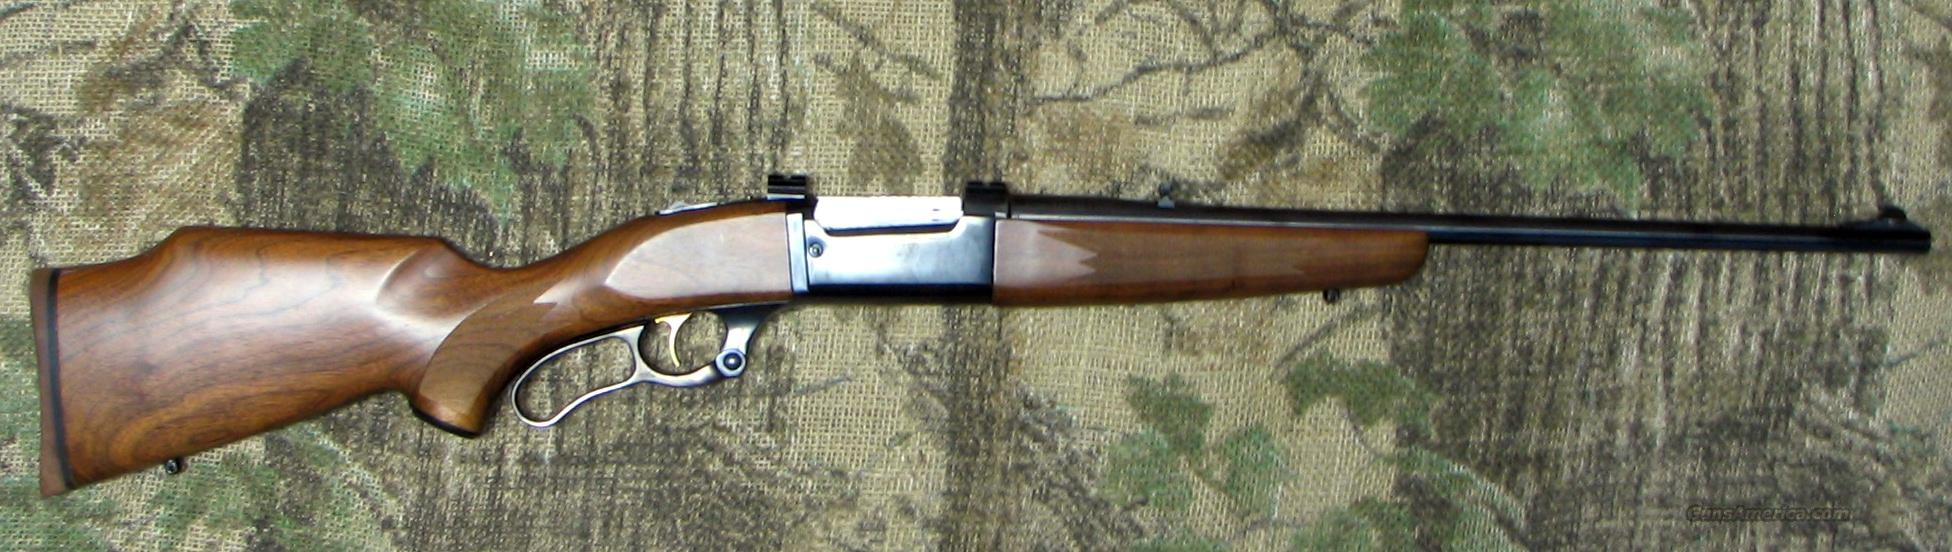 SAVAGE Model 99F Lever-Action Rifle, .284 Win Cal  Guns > Rifles > Savage Rifles > Model 95/99 Family